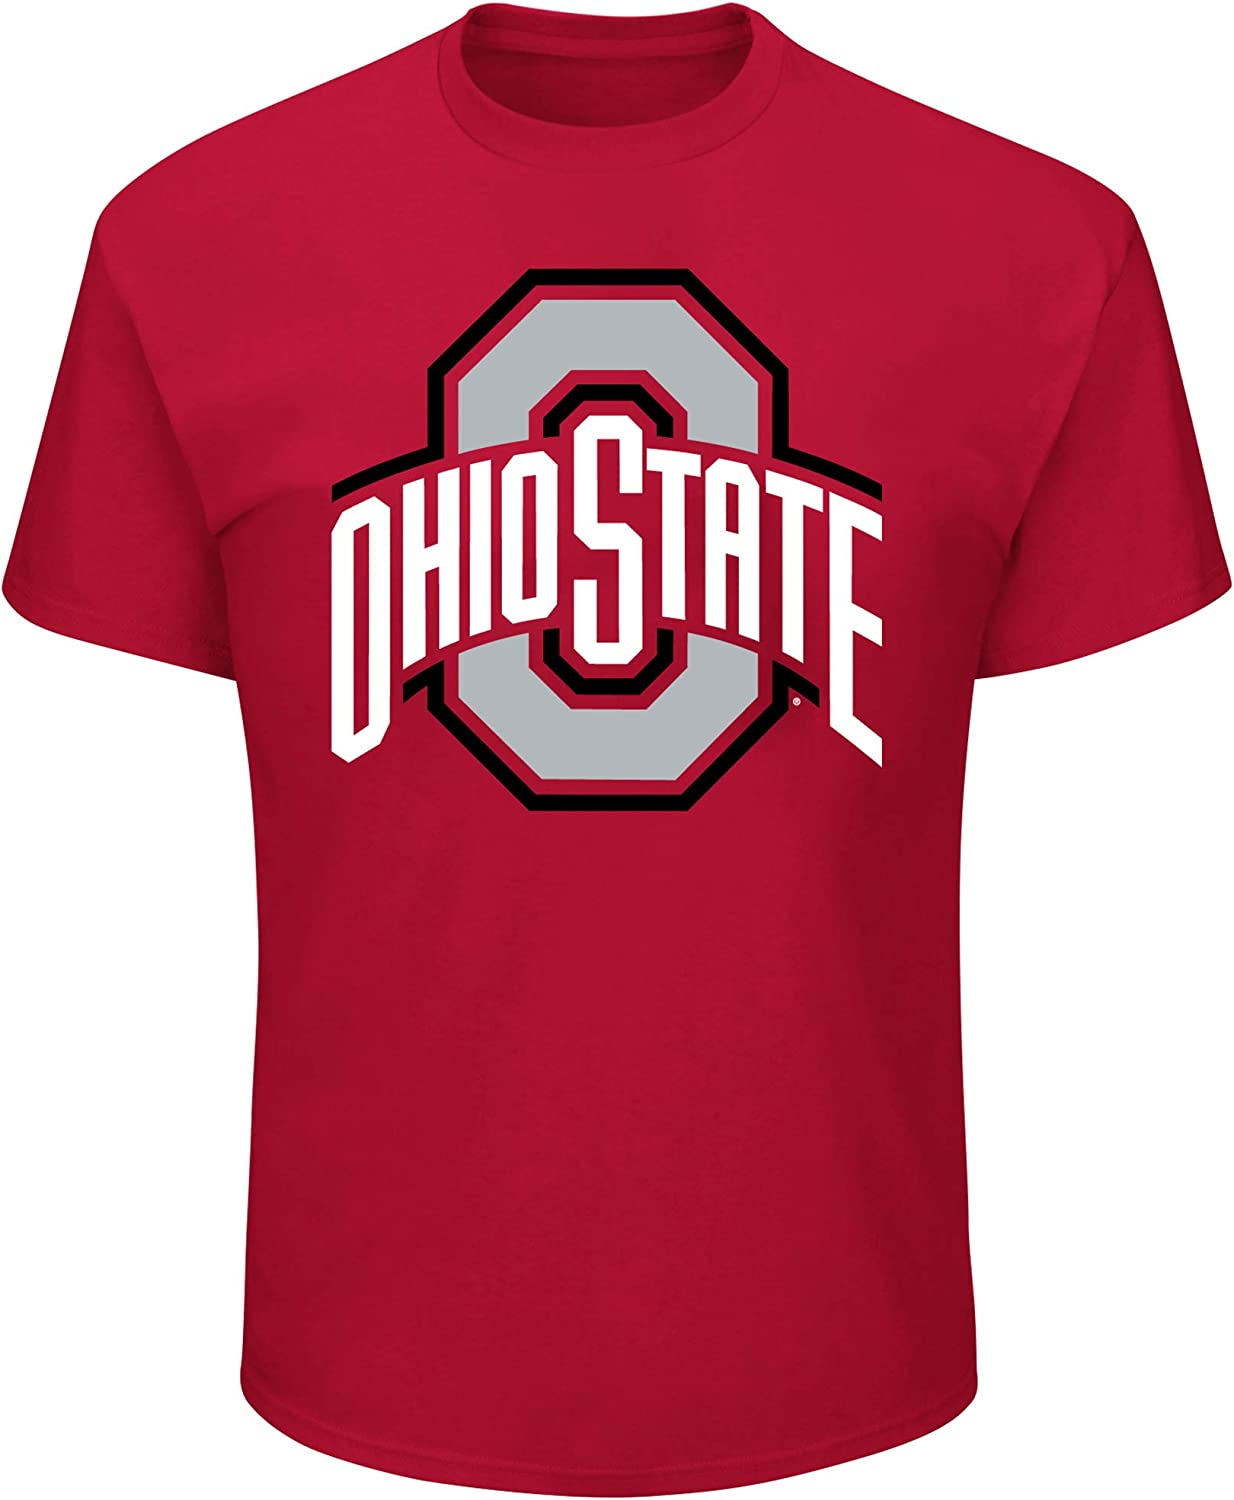 NCAA Men's Big and Tall Short Sleeve Shirt- Team Cotton Tee Colo Popular shop is the lowest price challenge Luxury